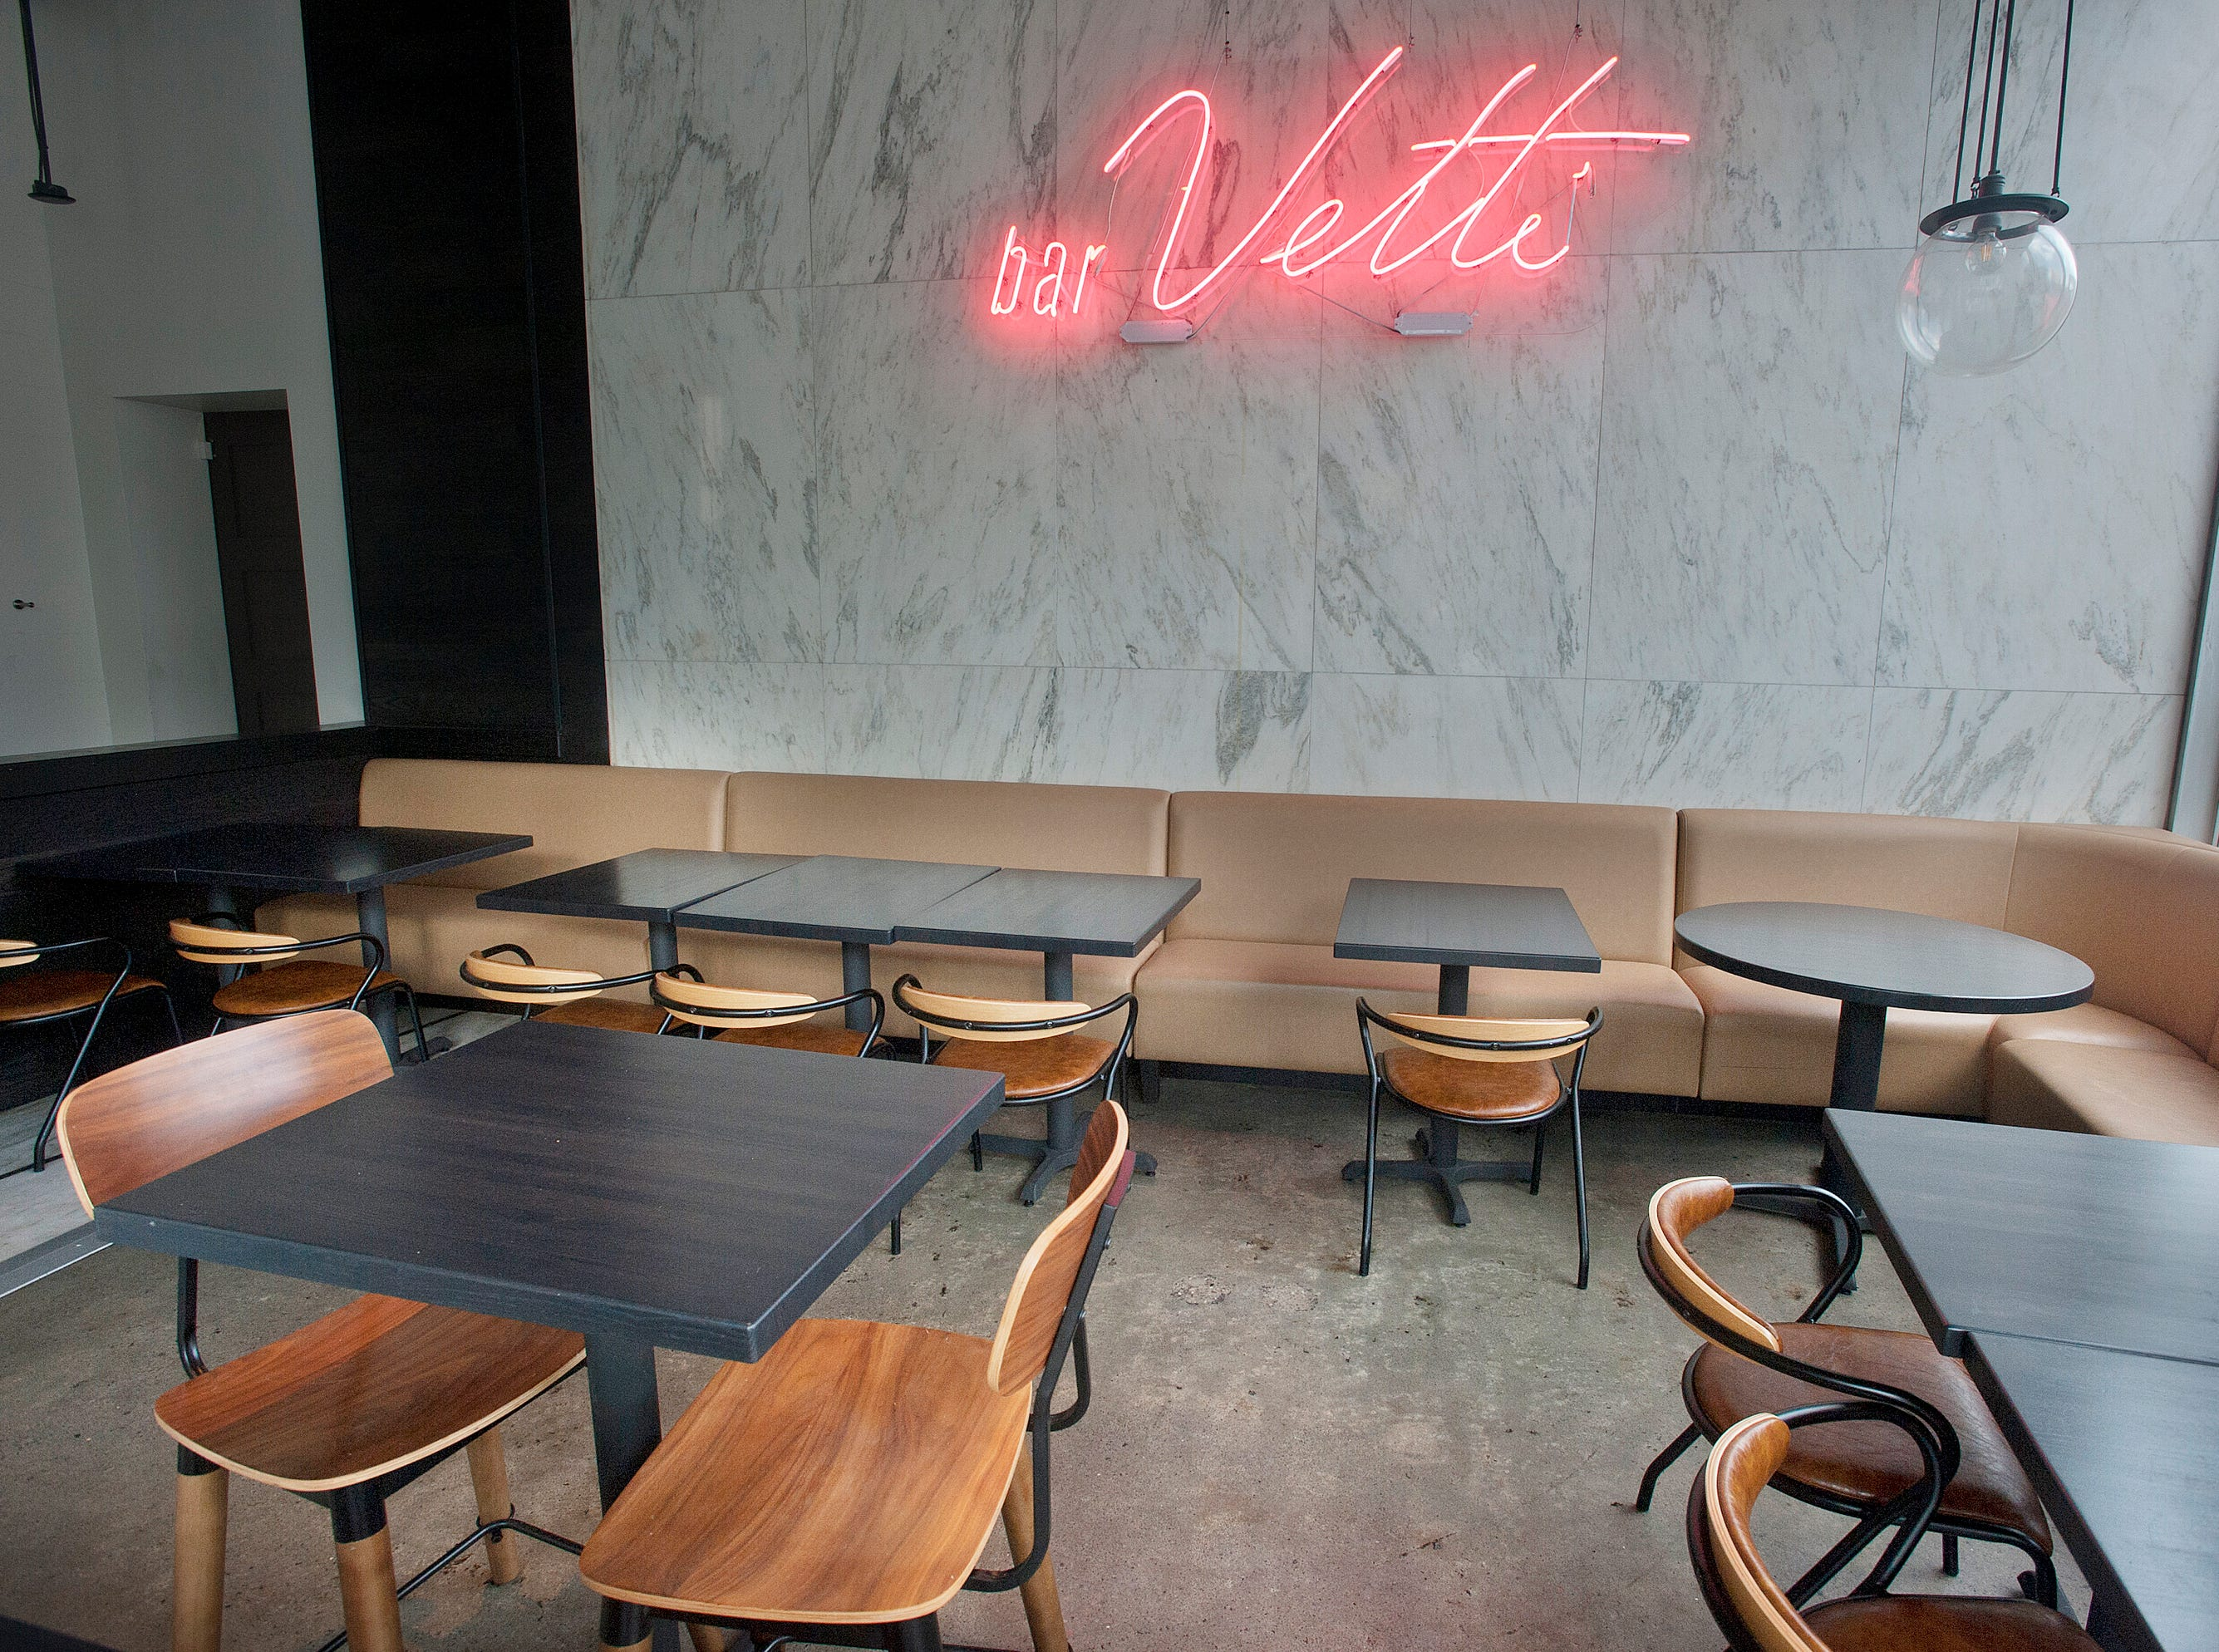 The dining room of bar Vetti, an Italian restaurant located on the first floor of the 800 Building, 800 S. 4th Street. July 10, 2018